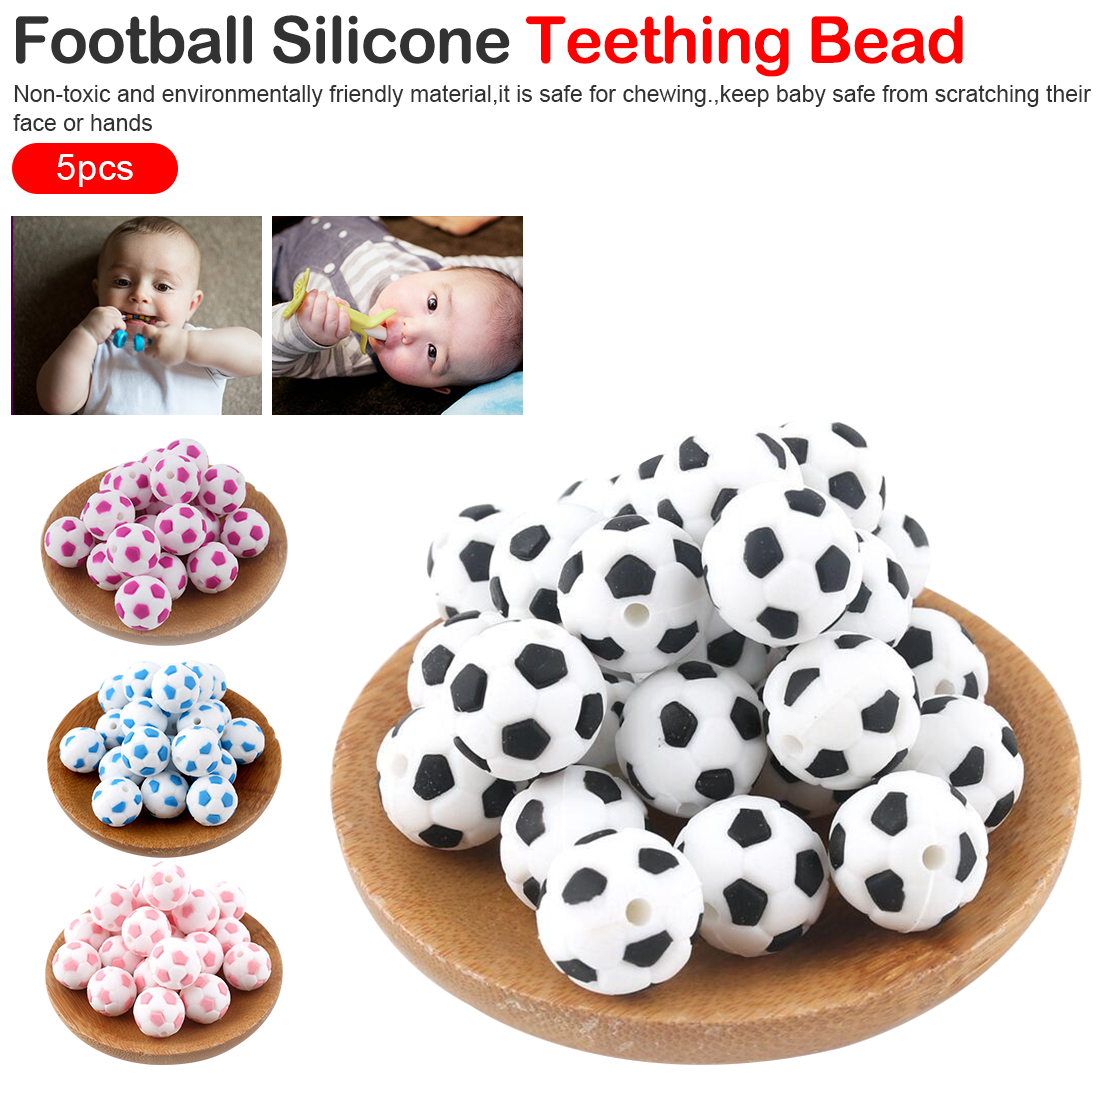 Silicone Beads 15mm Baby Teether Football Food Grade Silicone Soccer Round Bead 5PC BPA Free Bracelet Making Teether Bite